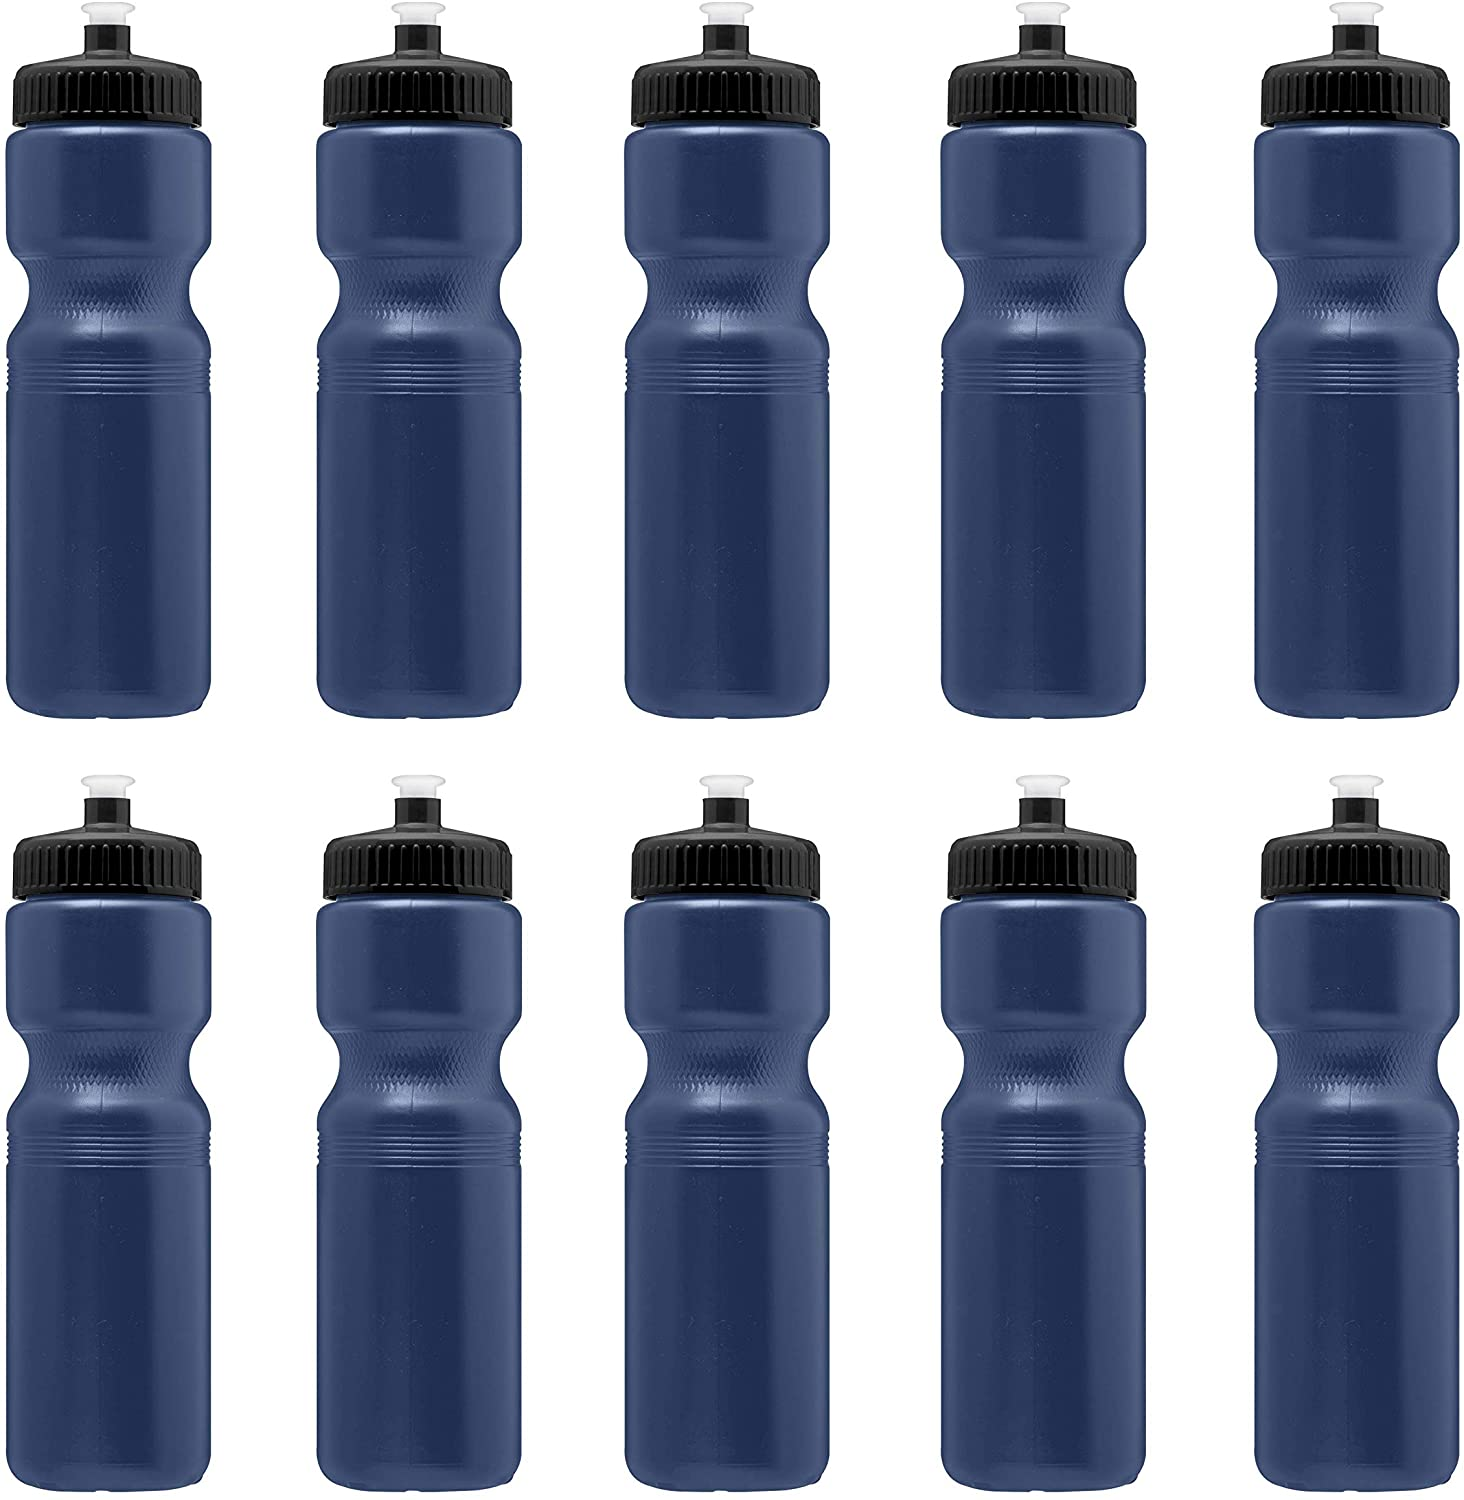 Water Bottles with Push Cap - 10 pack - 28 oz - Classic Squeeze Mountain Road Bike Bicycle Holder Cycling Water Bottle - Great for Sports - Navy Blue